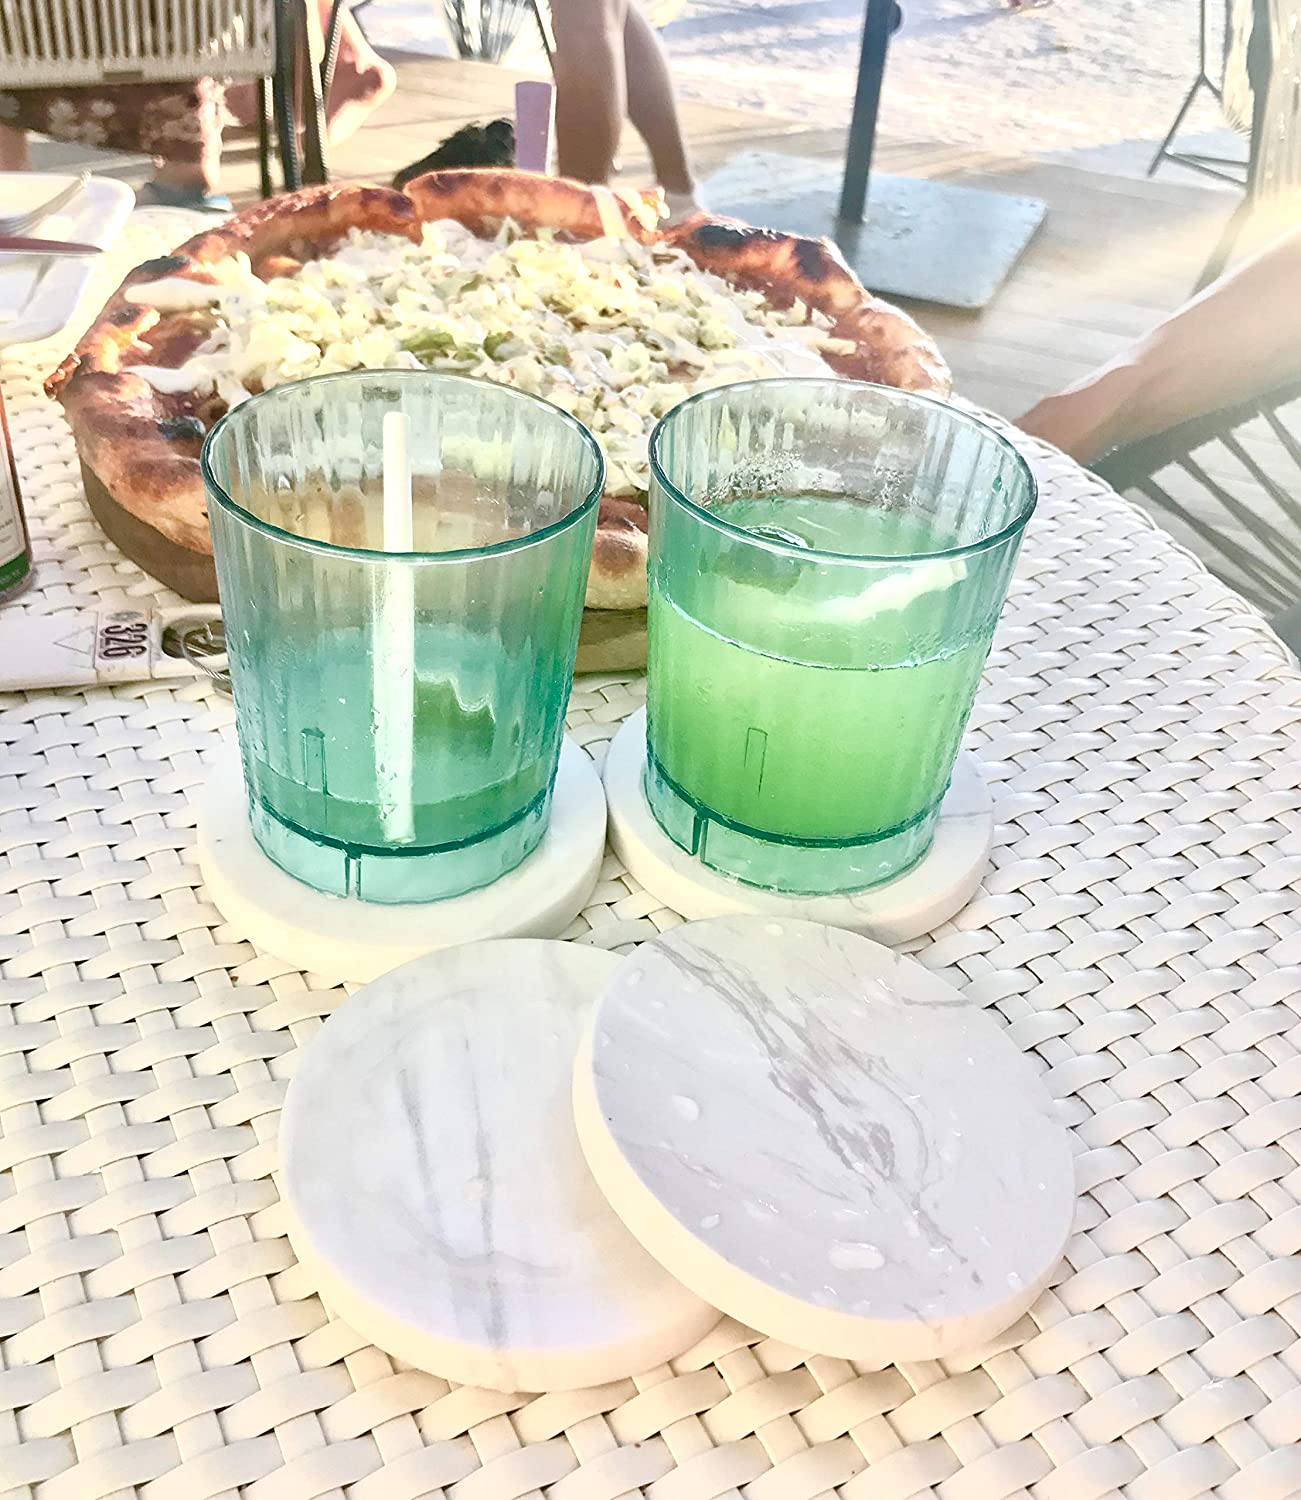 Set of 4 Large Handcrafted Stackable Round Design White Marble Coaster Set Perfect For Wine Glass Real Polished Stone Tile Marble Coasters Ideal For Bar and Dining Table